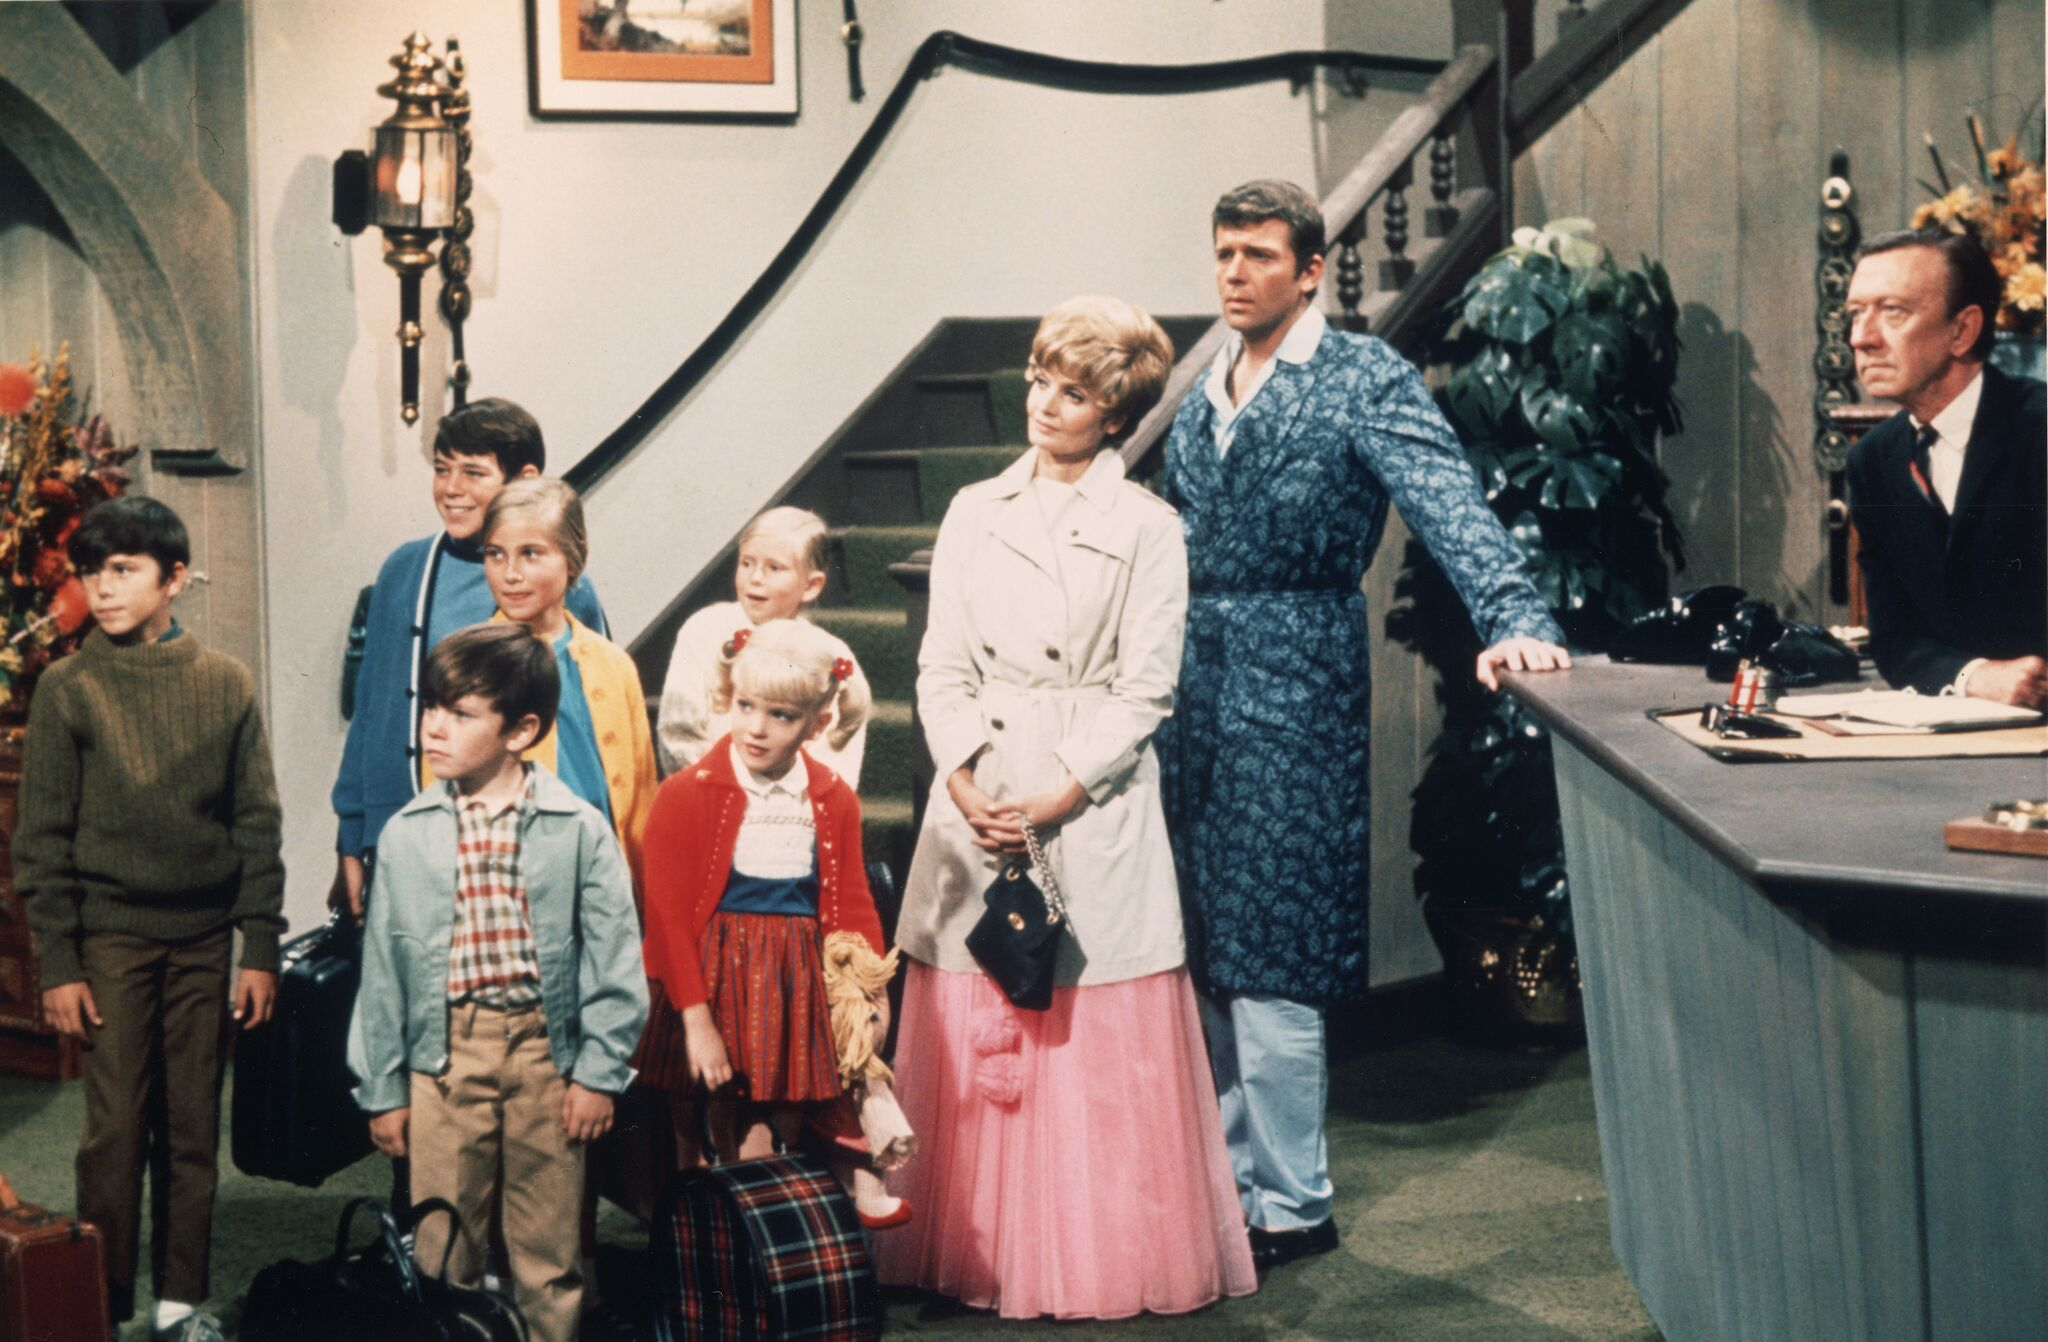 """The cast in a hotel lobby from the TV series """"The Brady Bunch"""" 